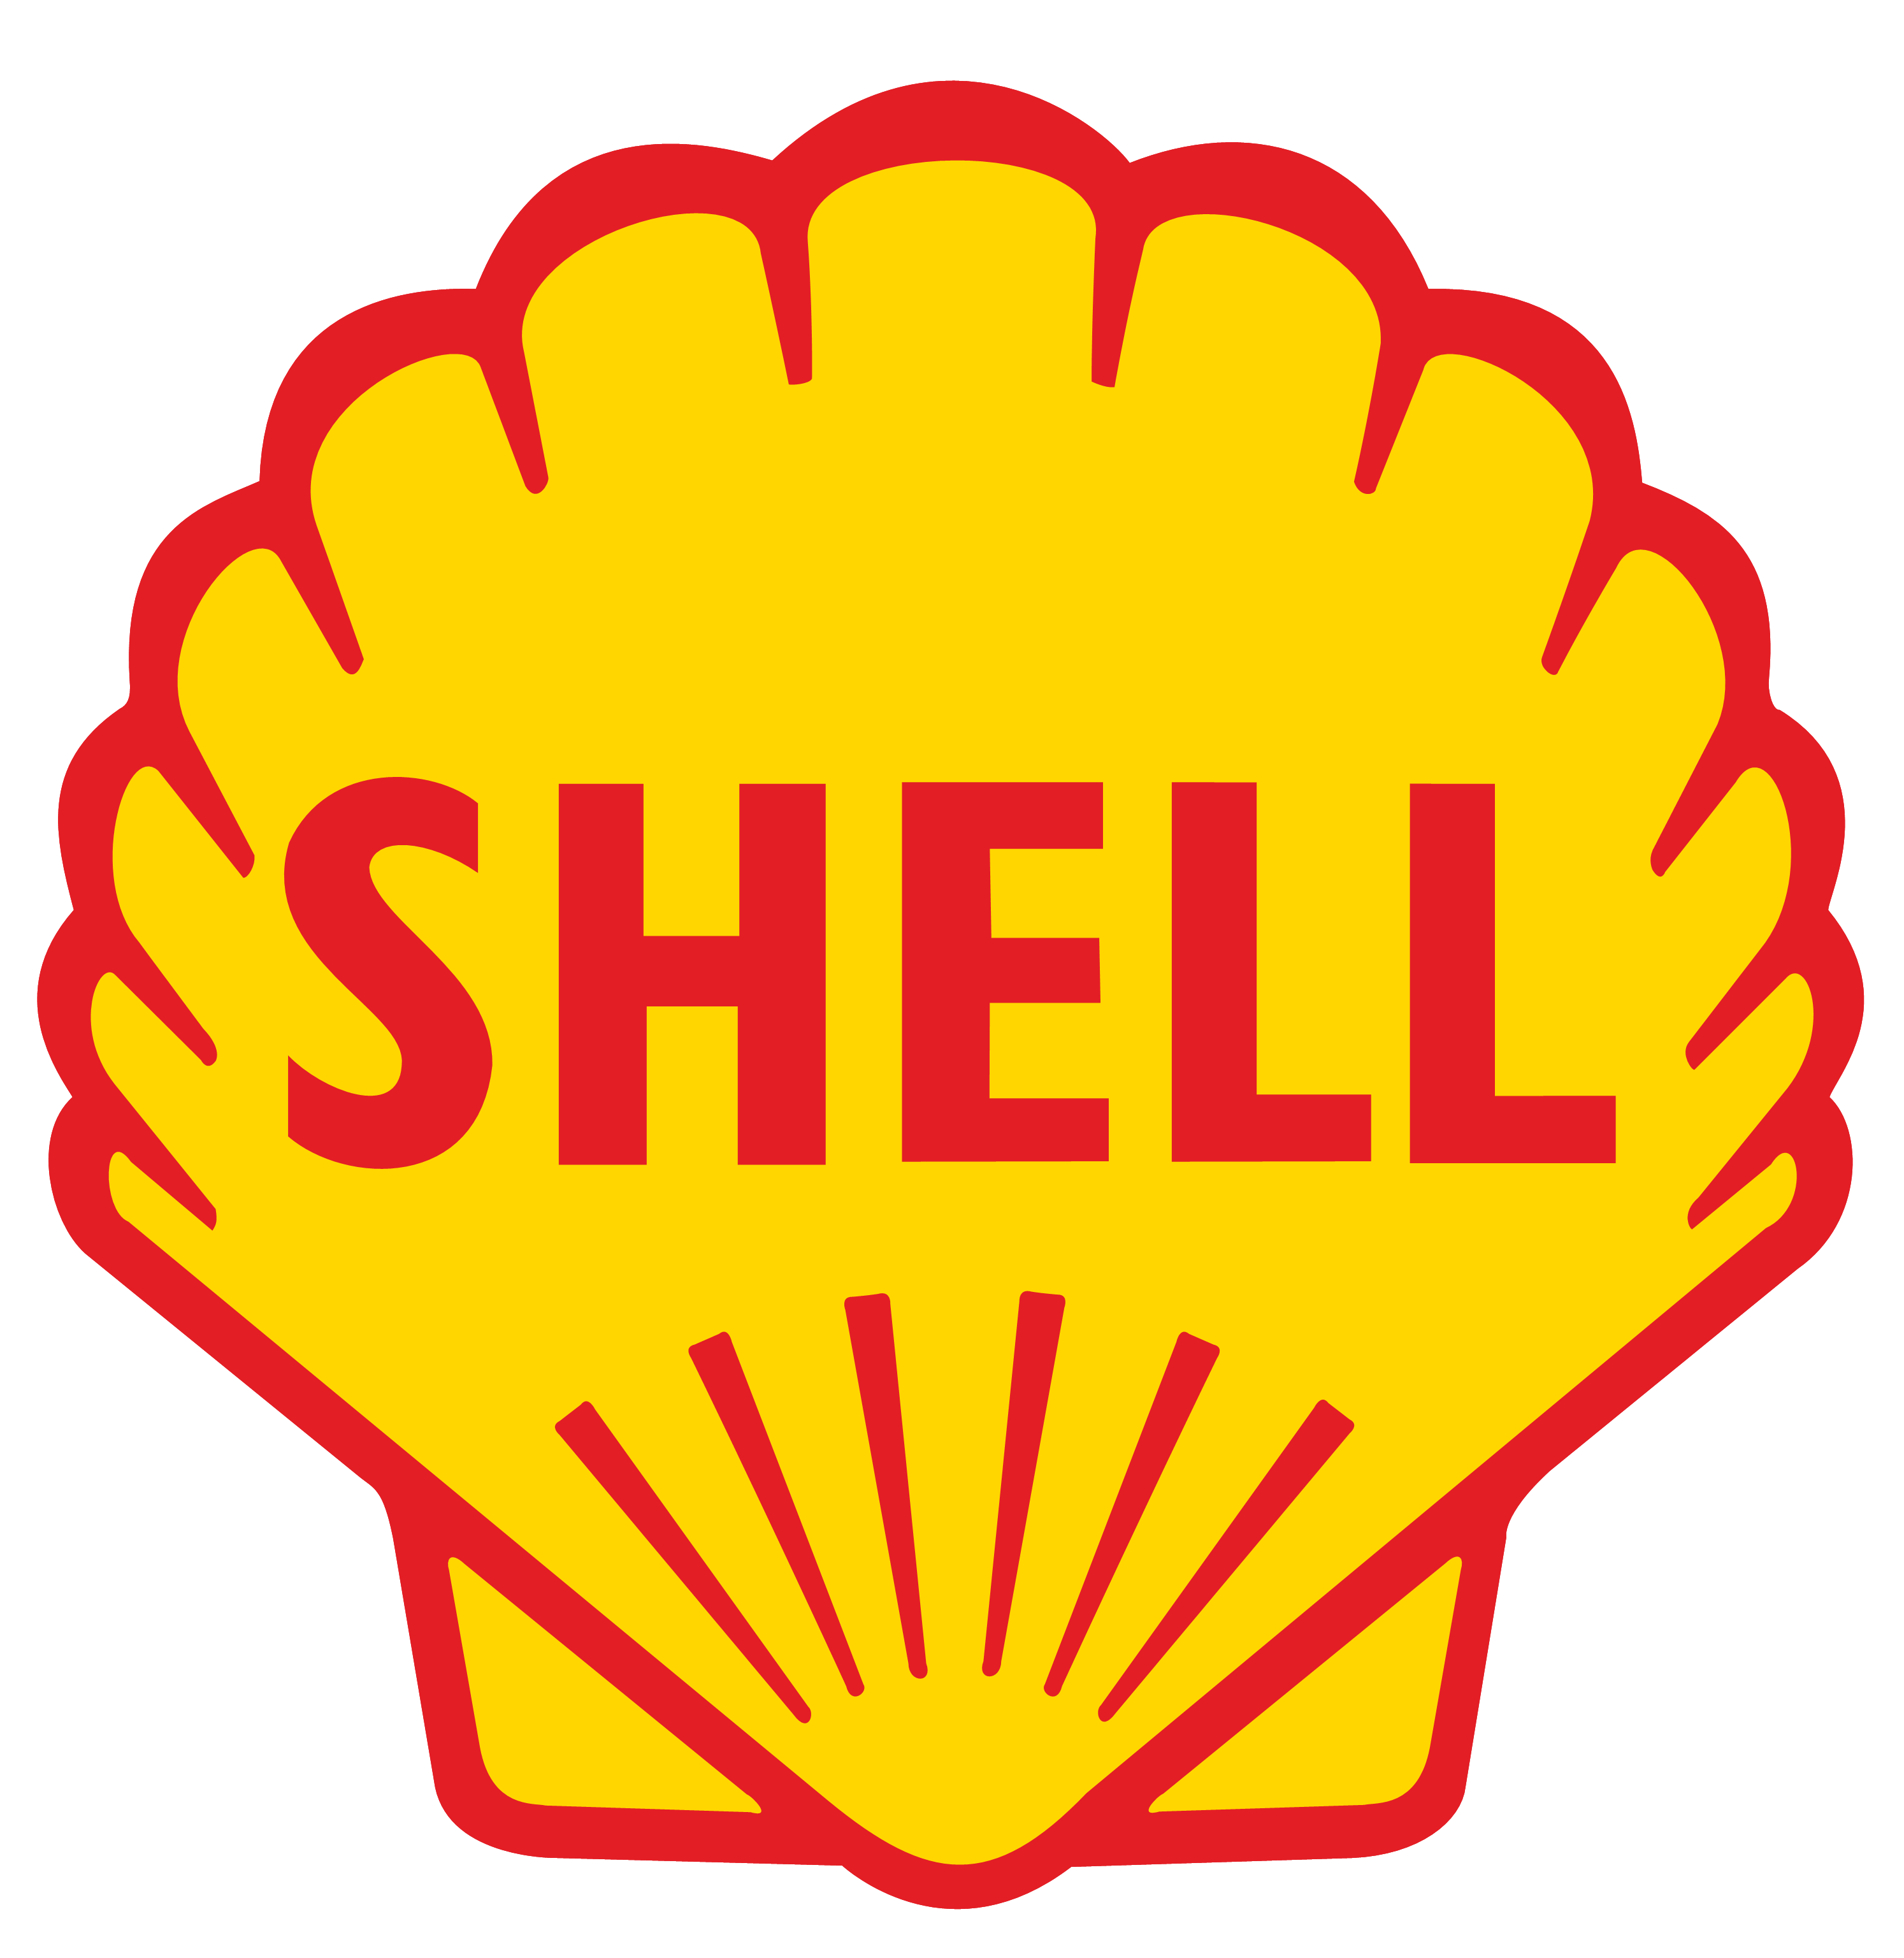 Shell Chemical Agrees to Pay $10 Million to Fix Pollution Problems